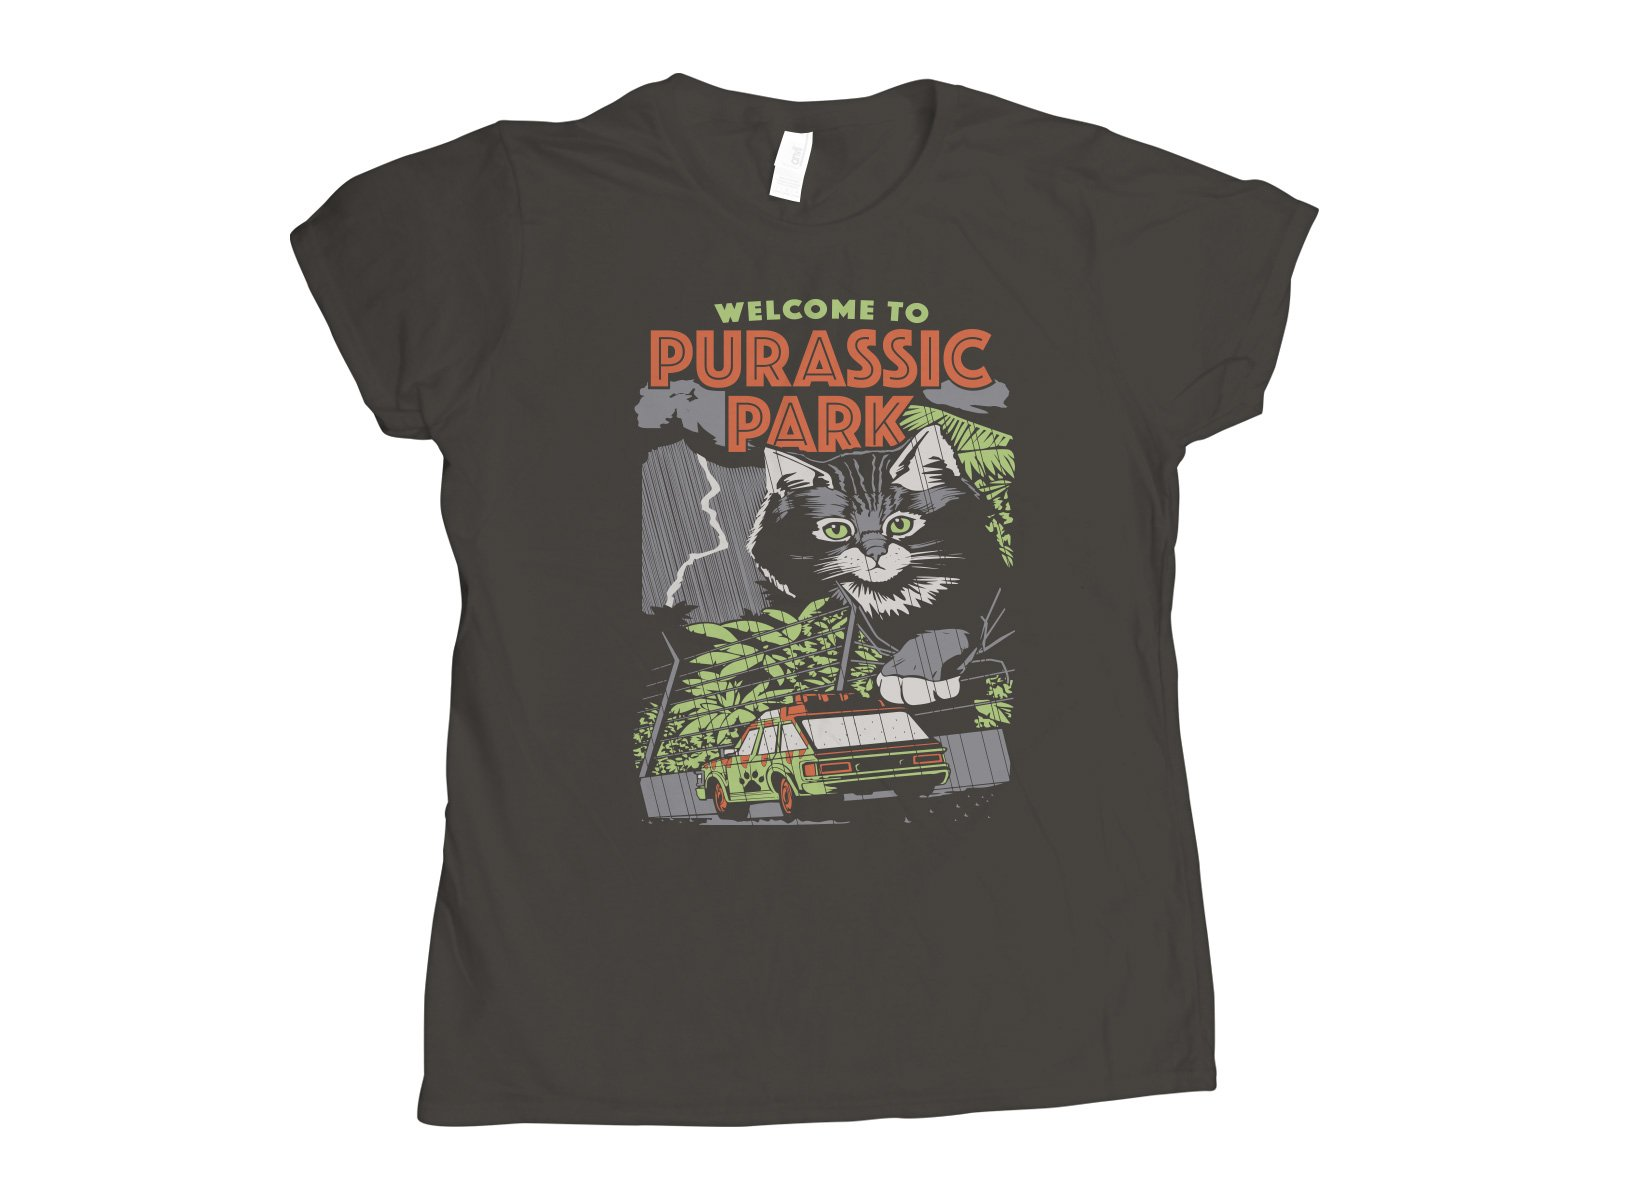 Purassic Park on Womens T-Shirt